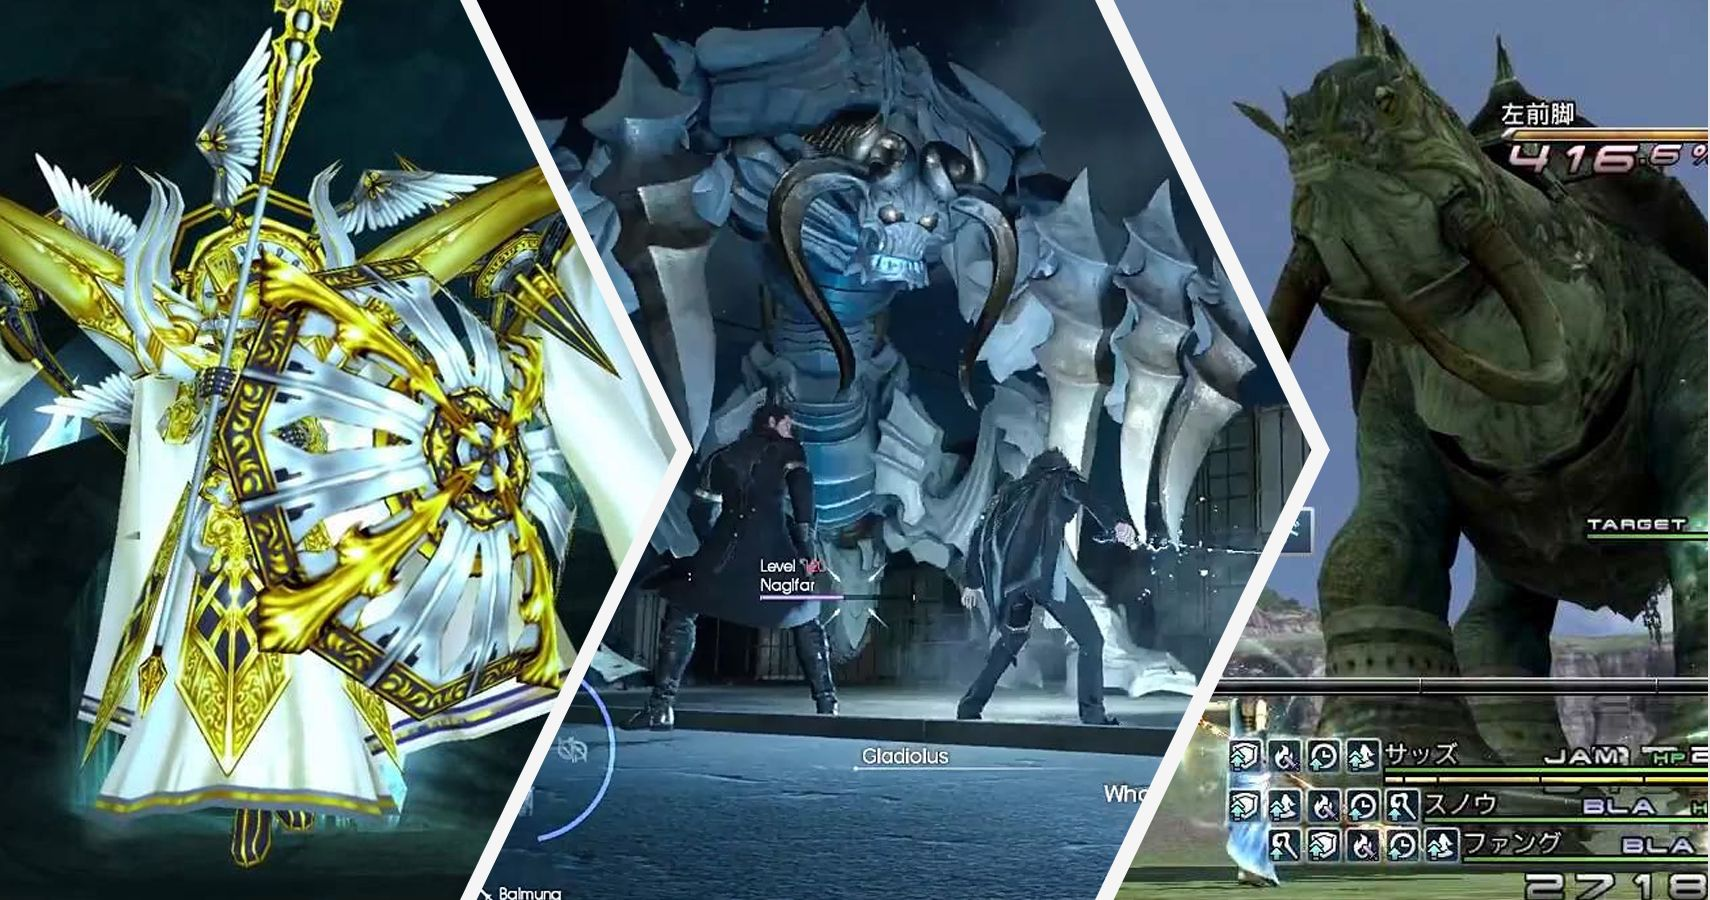 Final Fantasy: The 15 Strongest Secret Bosses Ranked From Weakest To